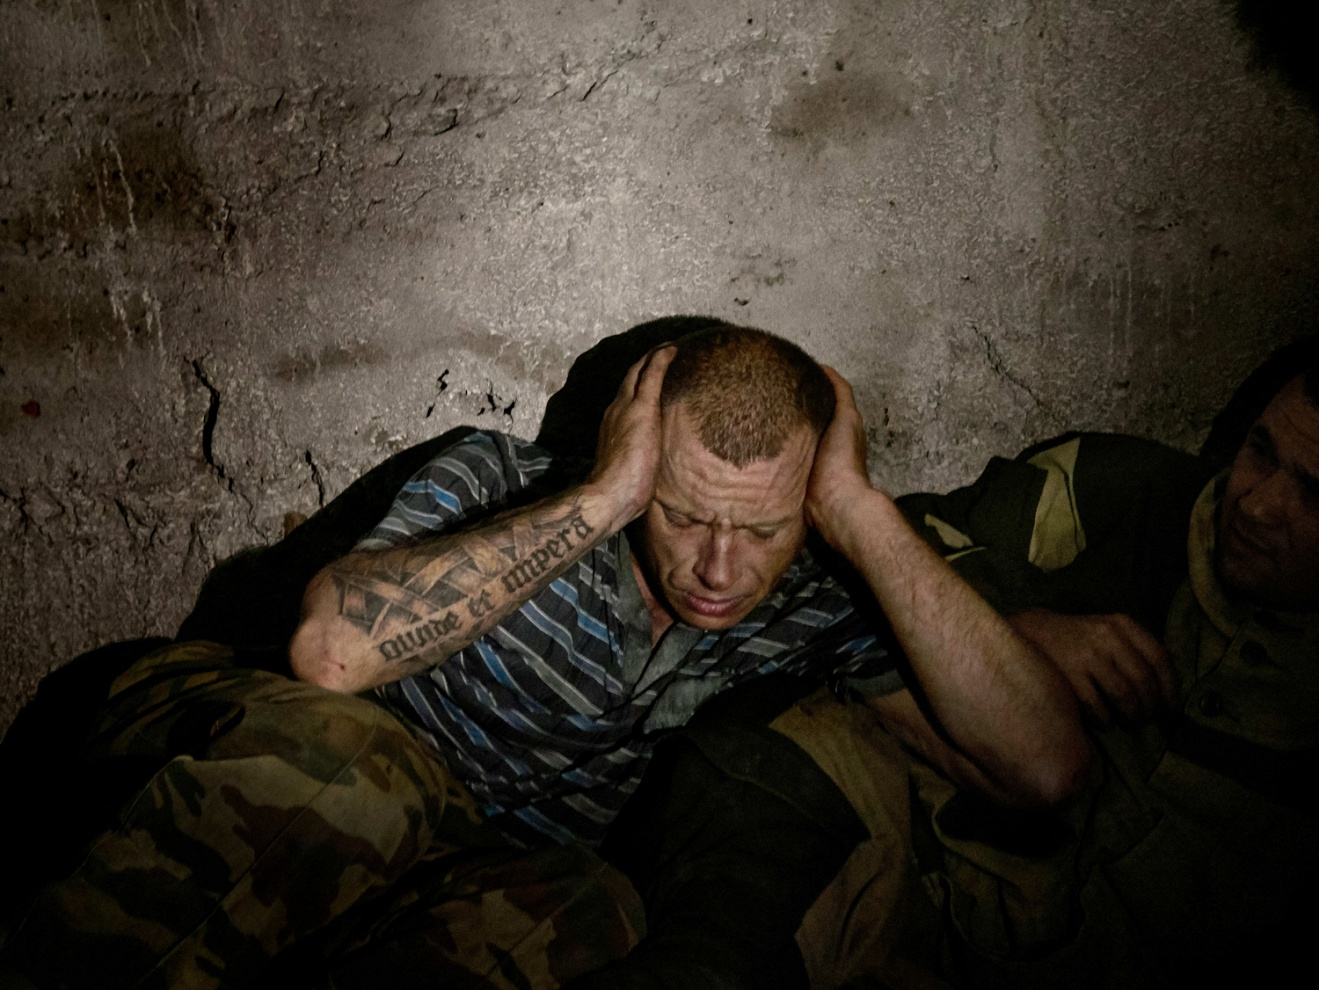 Ukraine; Donbass region; Spartak; 2016